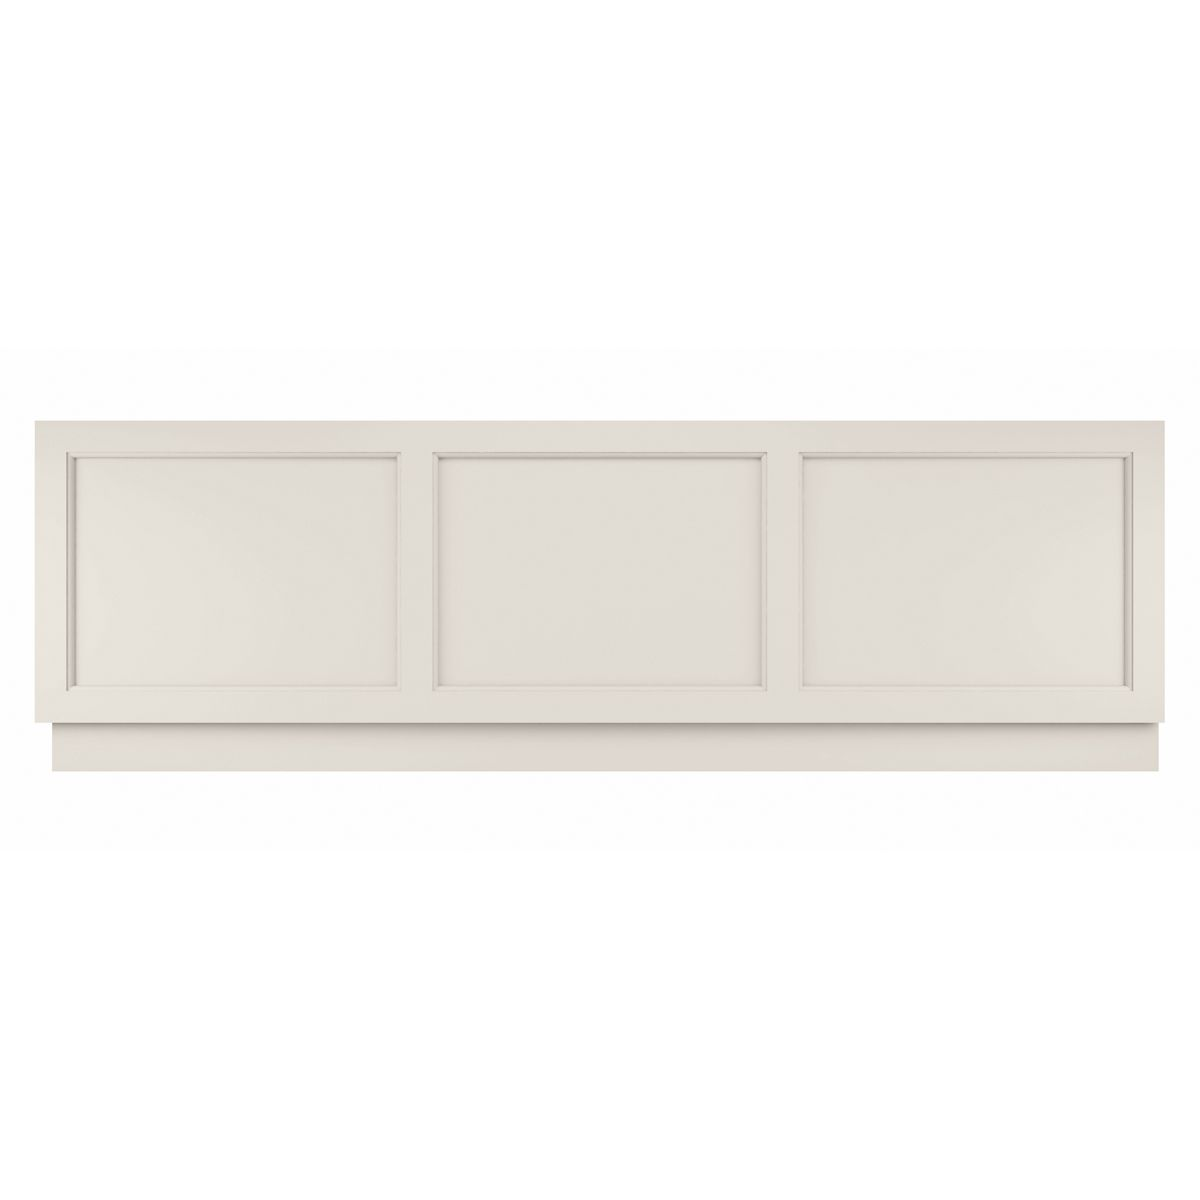 Old London Timeless Sand Front Bath Panel 1700mm